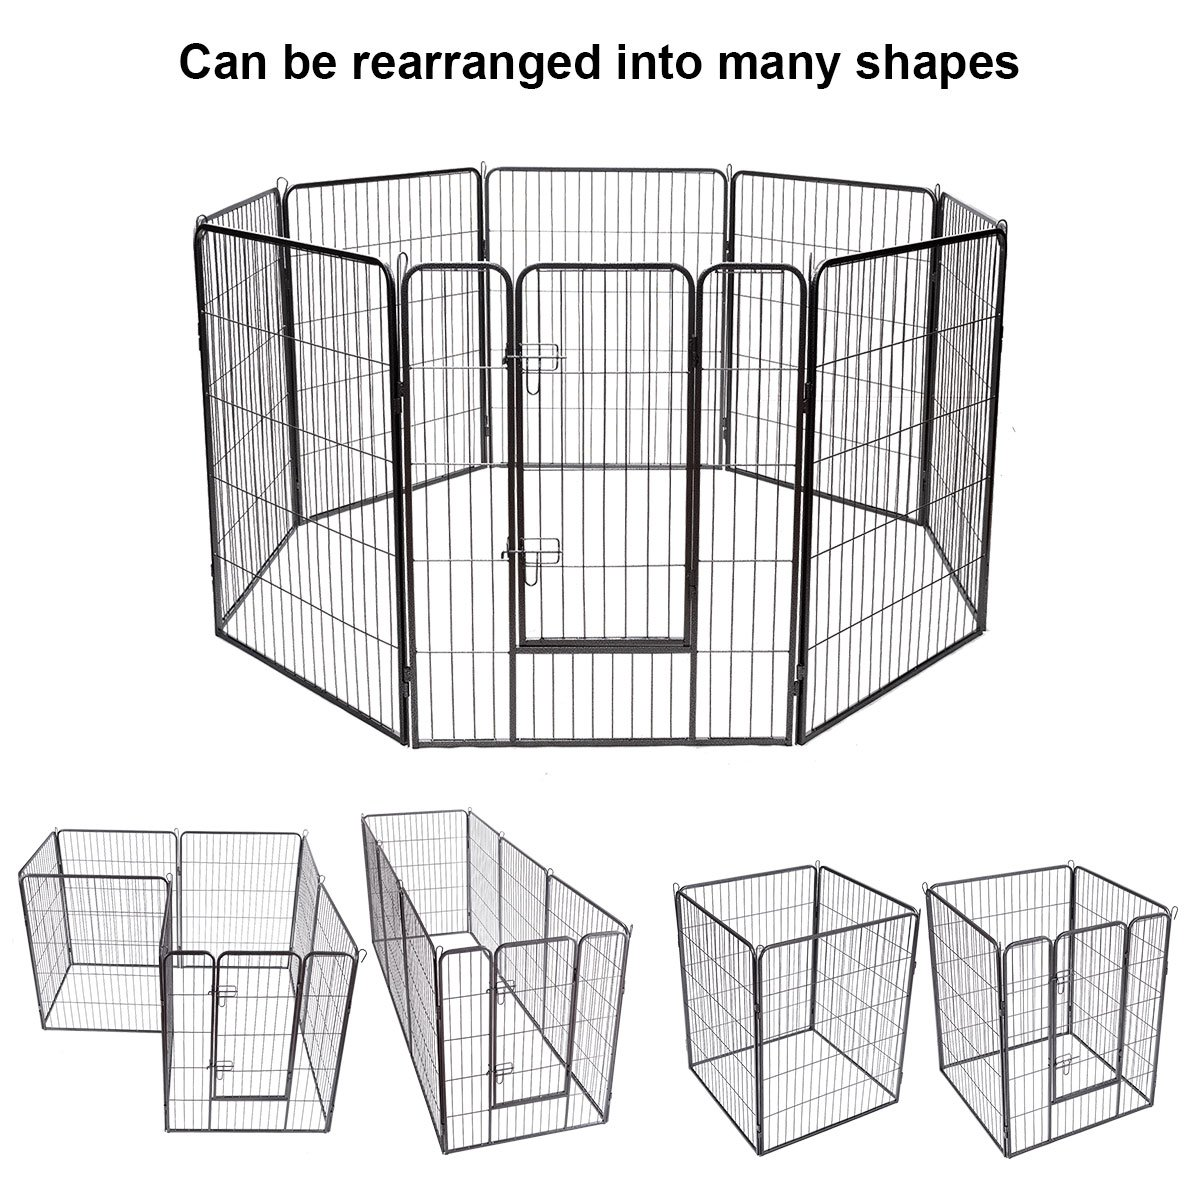 GYMAX Pet Playpen 8 Panel Metal Folding Dog Fence Puppy Cat Rabbit Pets Run Cage Indoor Outdoor Kennel Enclosure Flat Package with Rounded Safe Edges